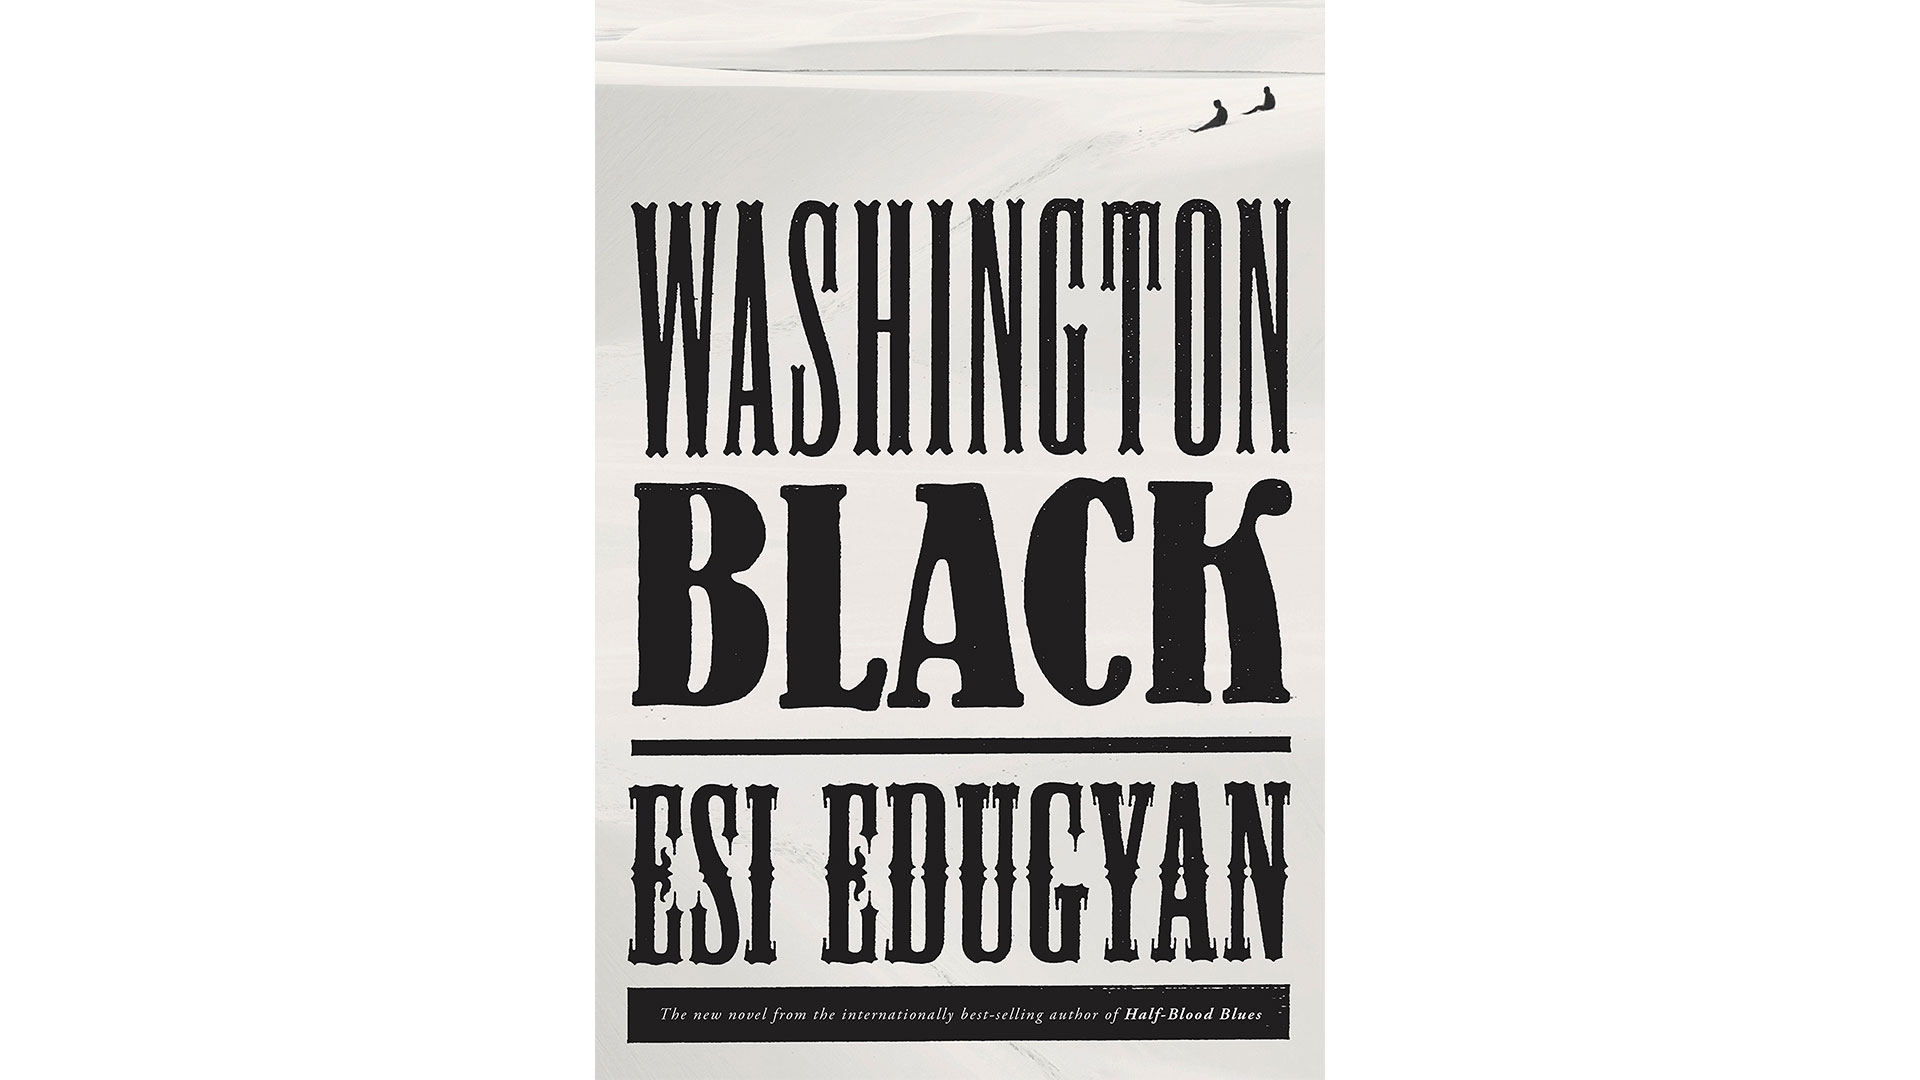 2.  Washington Black  by Esi Edugyan